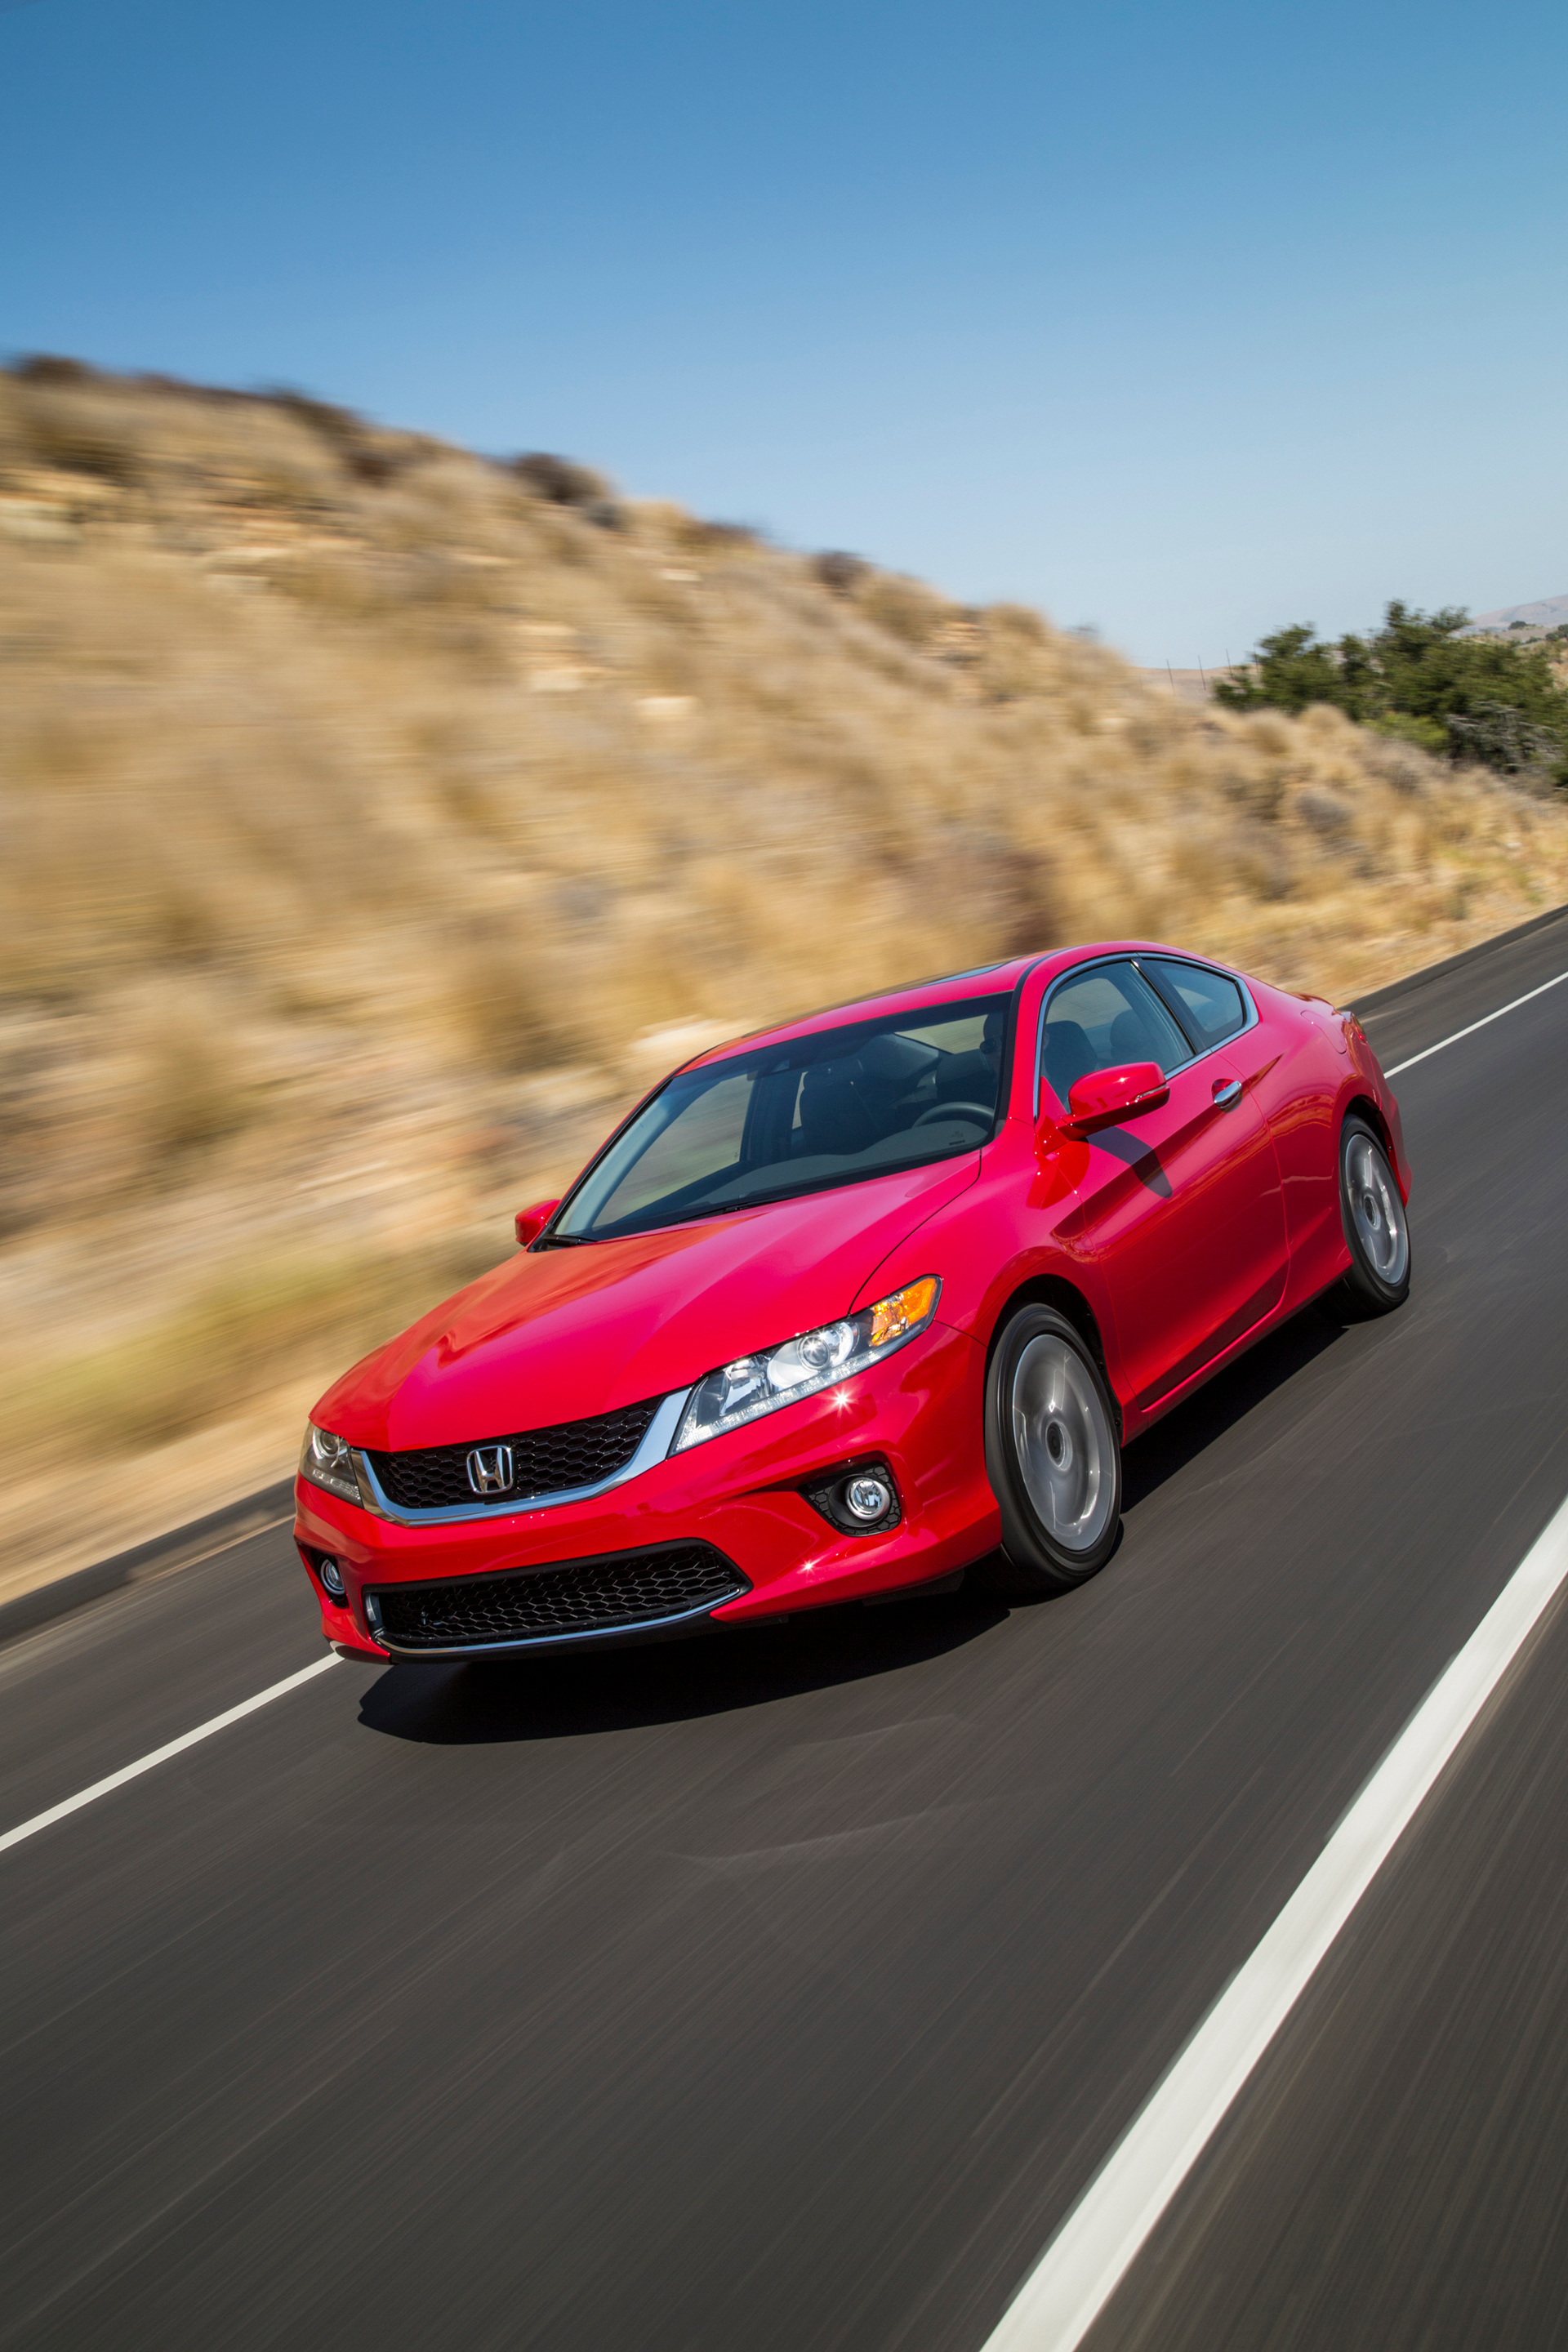 Top 10 Best-Selling Cars In America for 2015 - Carrrs Auto Portal